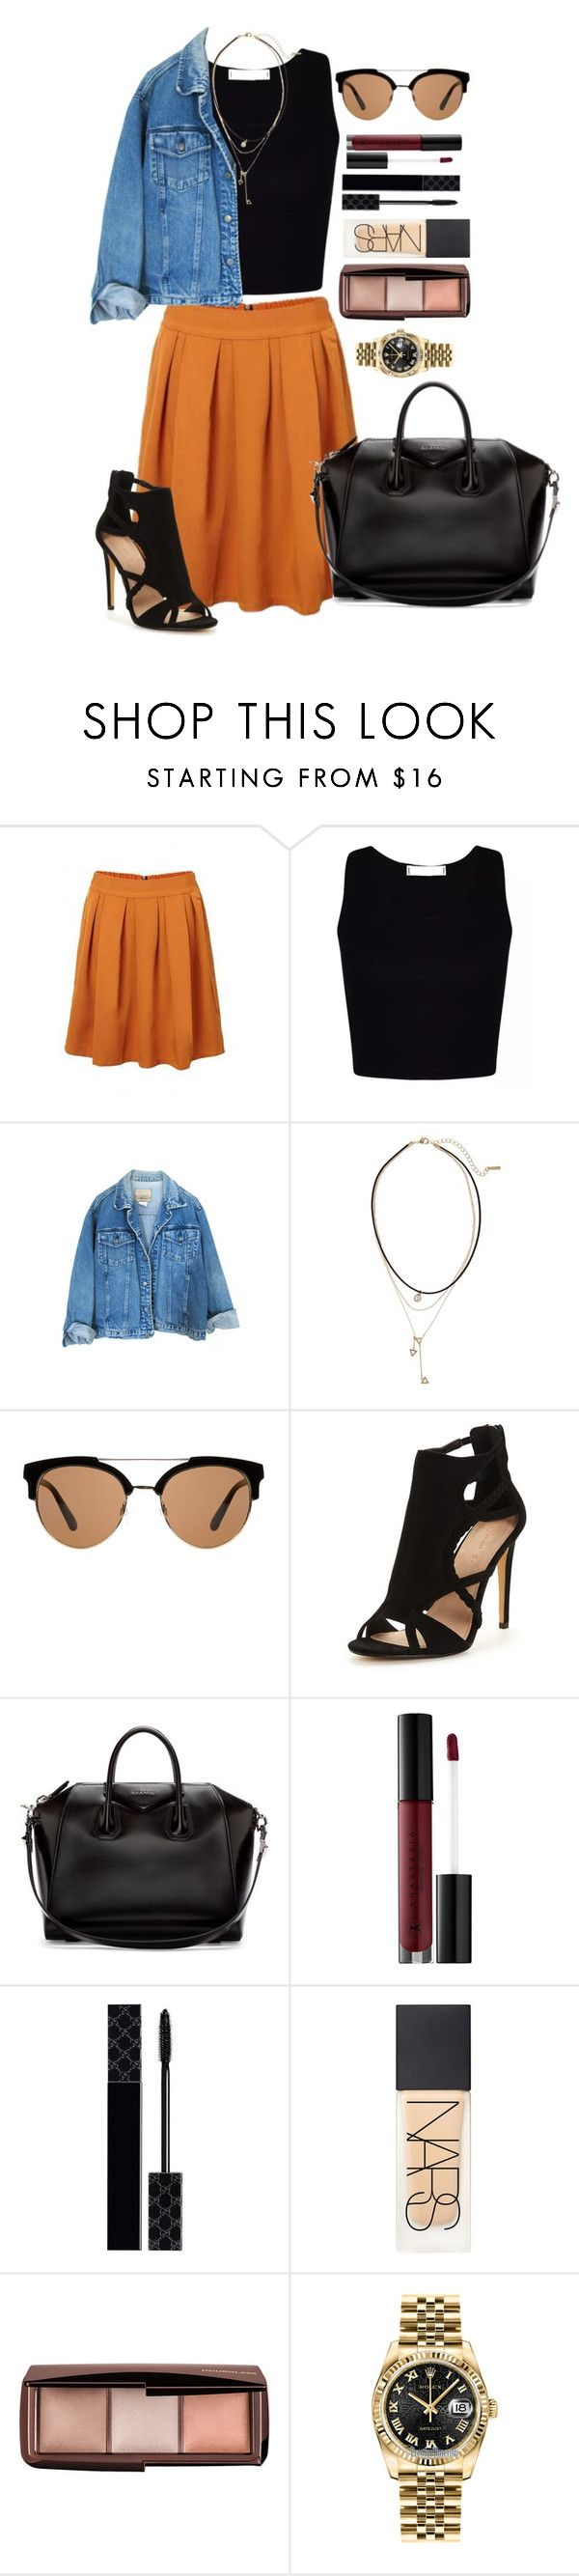 """""""Untitled #1495"""" by fabianarveloc on Polyvore featuring Loren Olivia, MANGO, Givenchy, Anastasia Beverly Hills, Gucci, NARS Cosmetics, Hourglass Cosmetics and Rolex"""